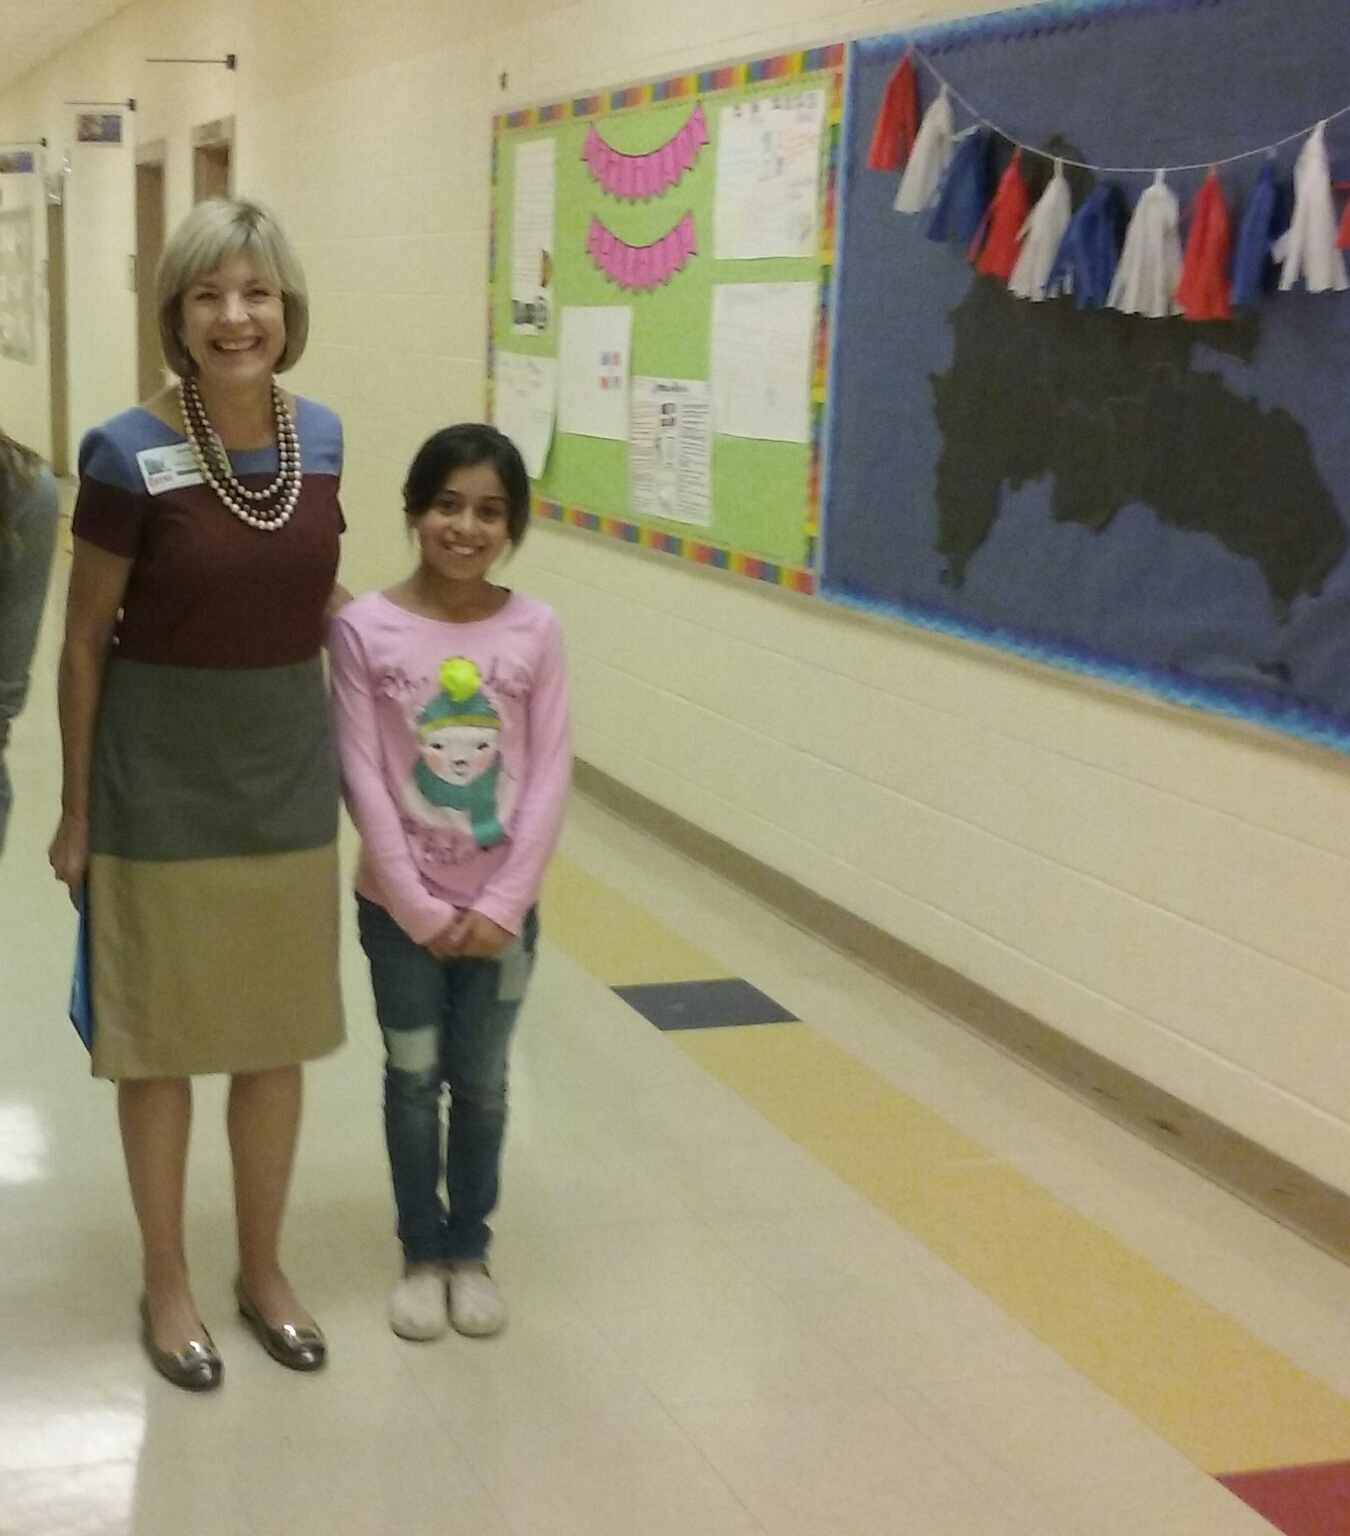 LifeWorth Financial Tutoring at the Local Elementary School